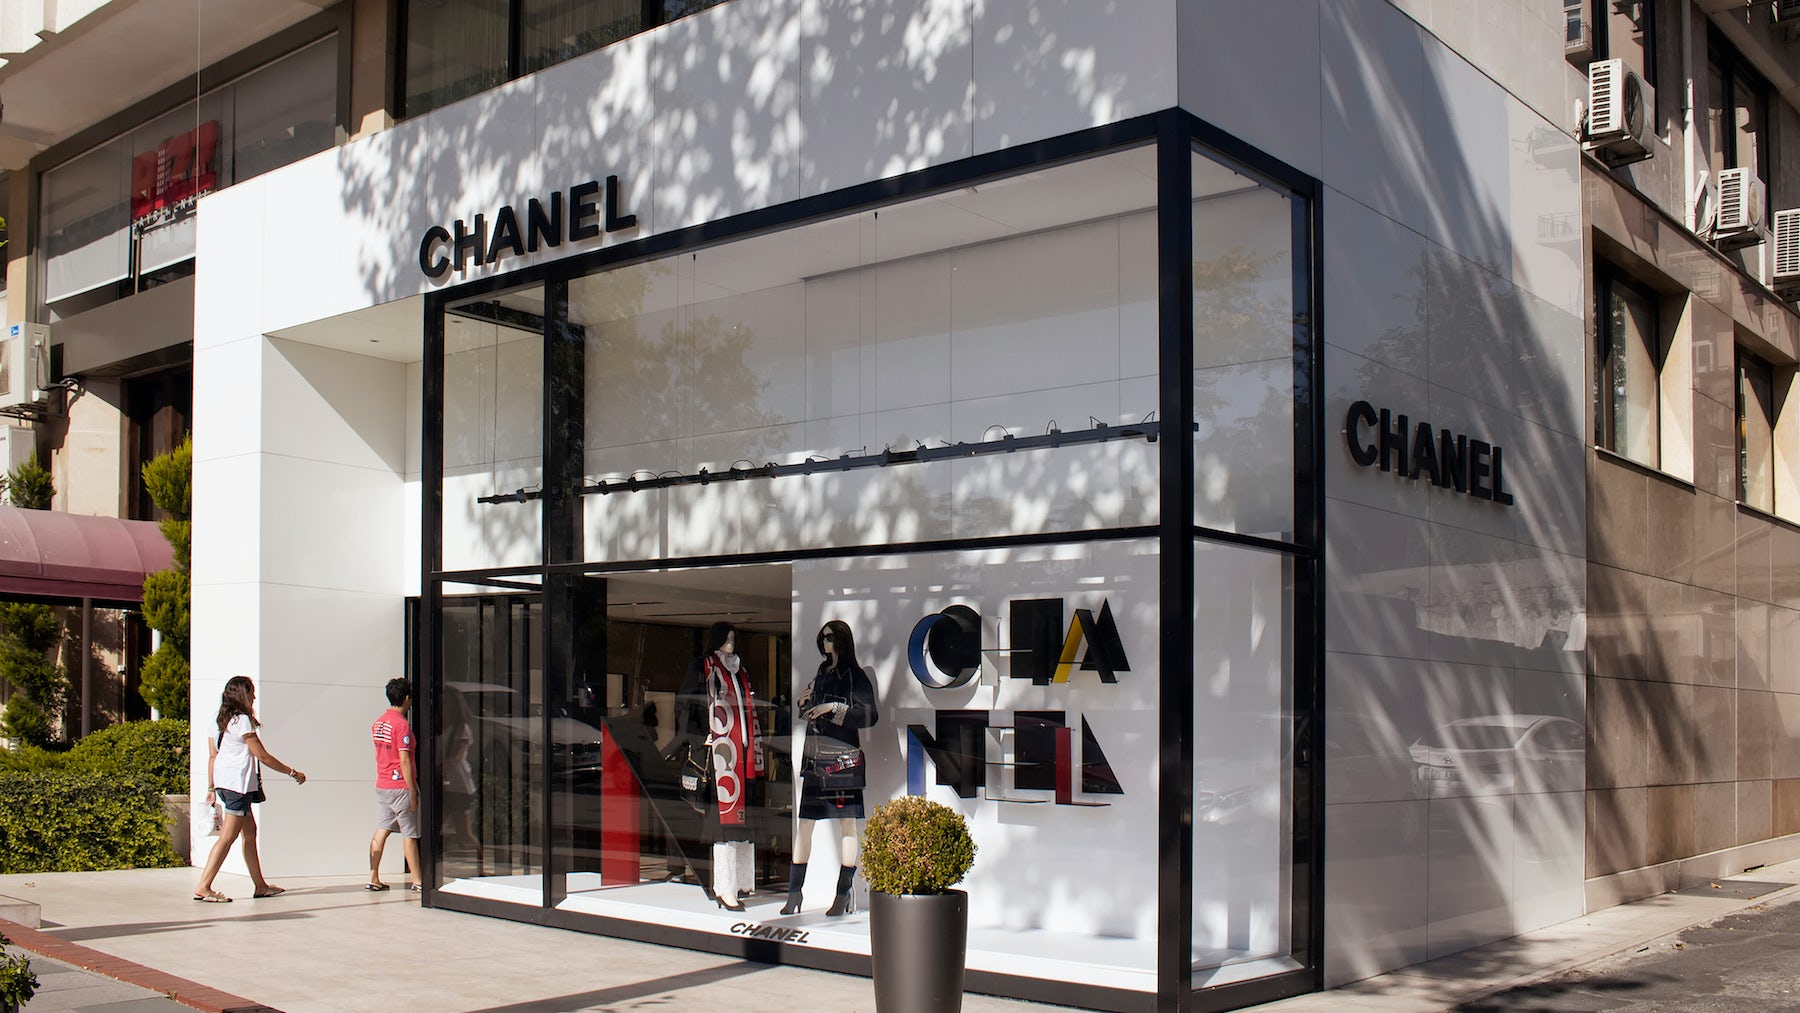 Chanel store in Istanbul | Source: Shutterstock